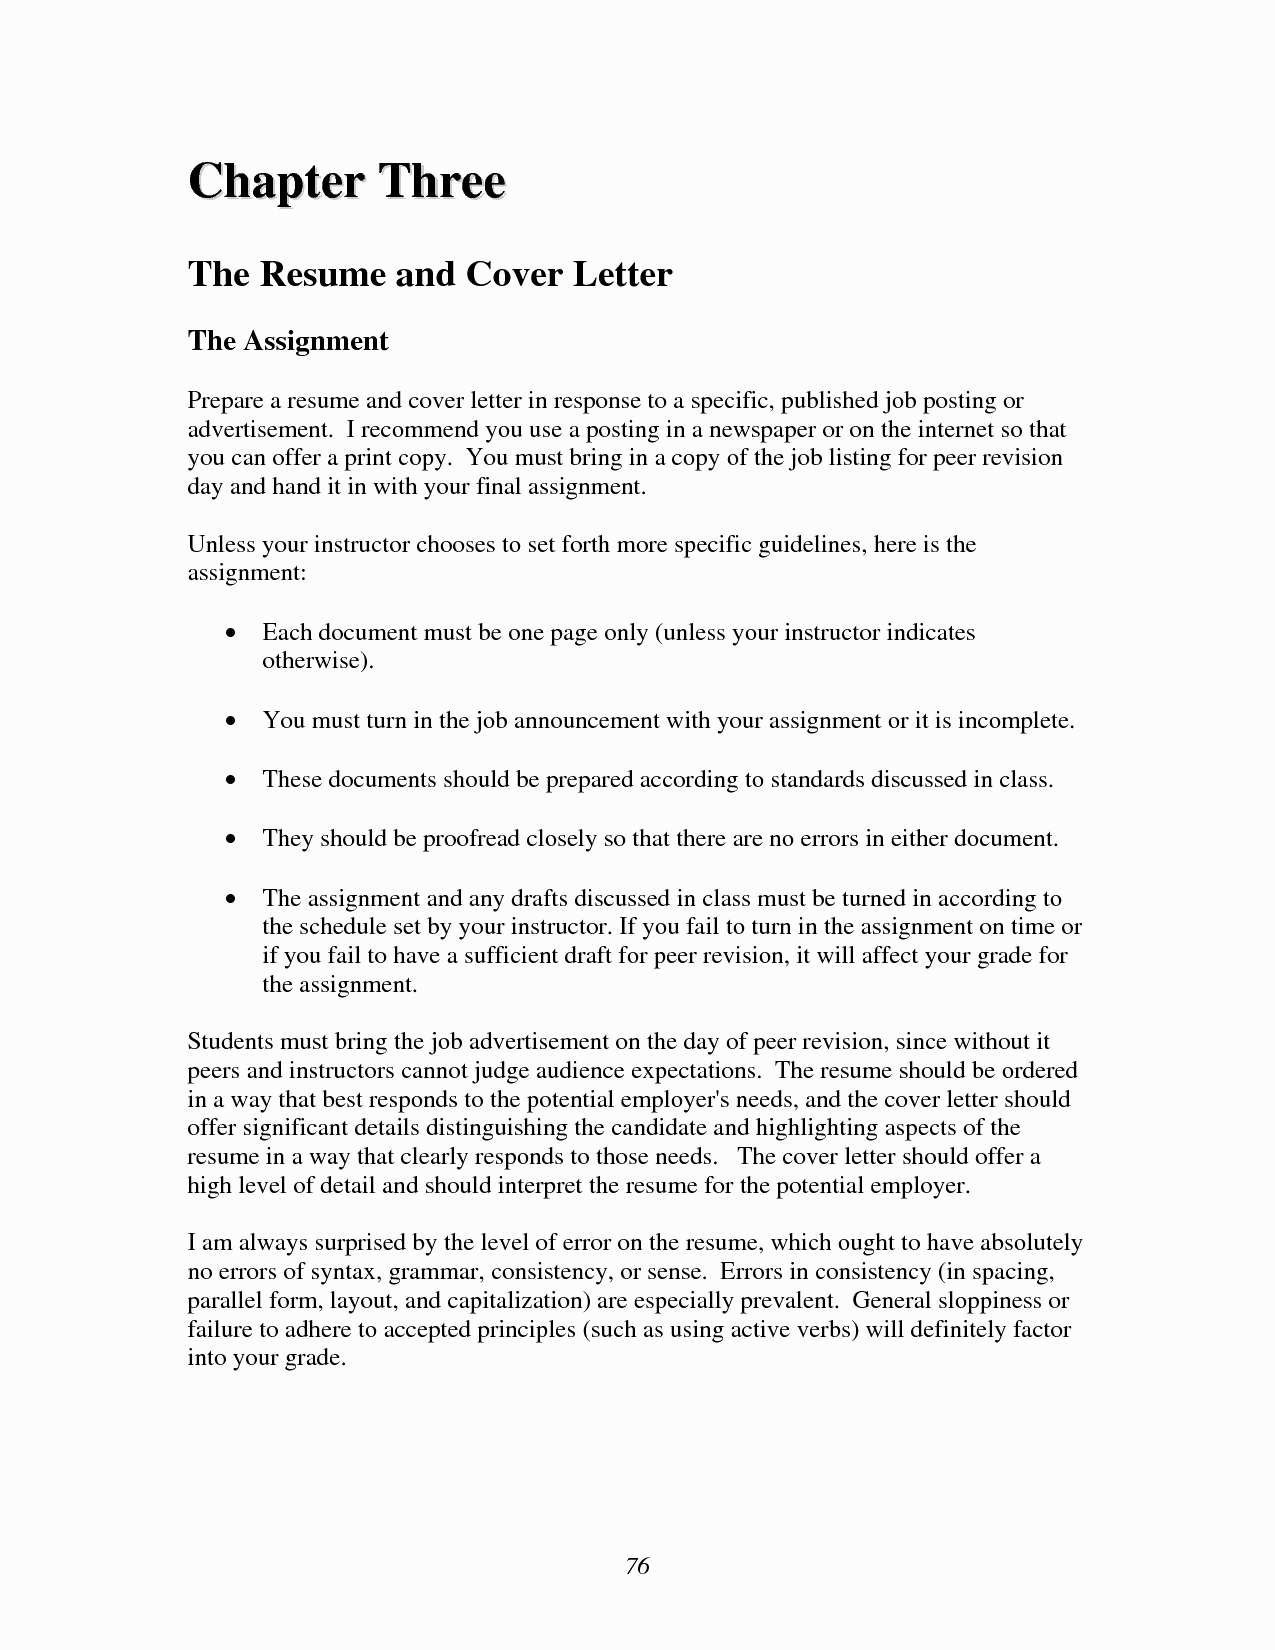 Career Cover Letter Template - Resume and Cover Letter Template Beautiful Fresh Job Fer Letter